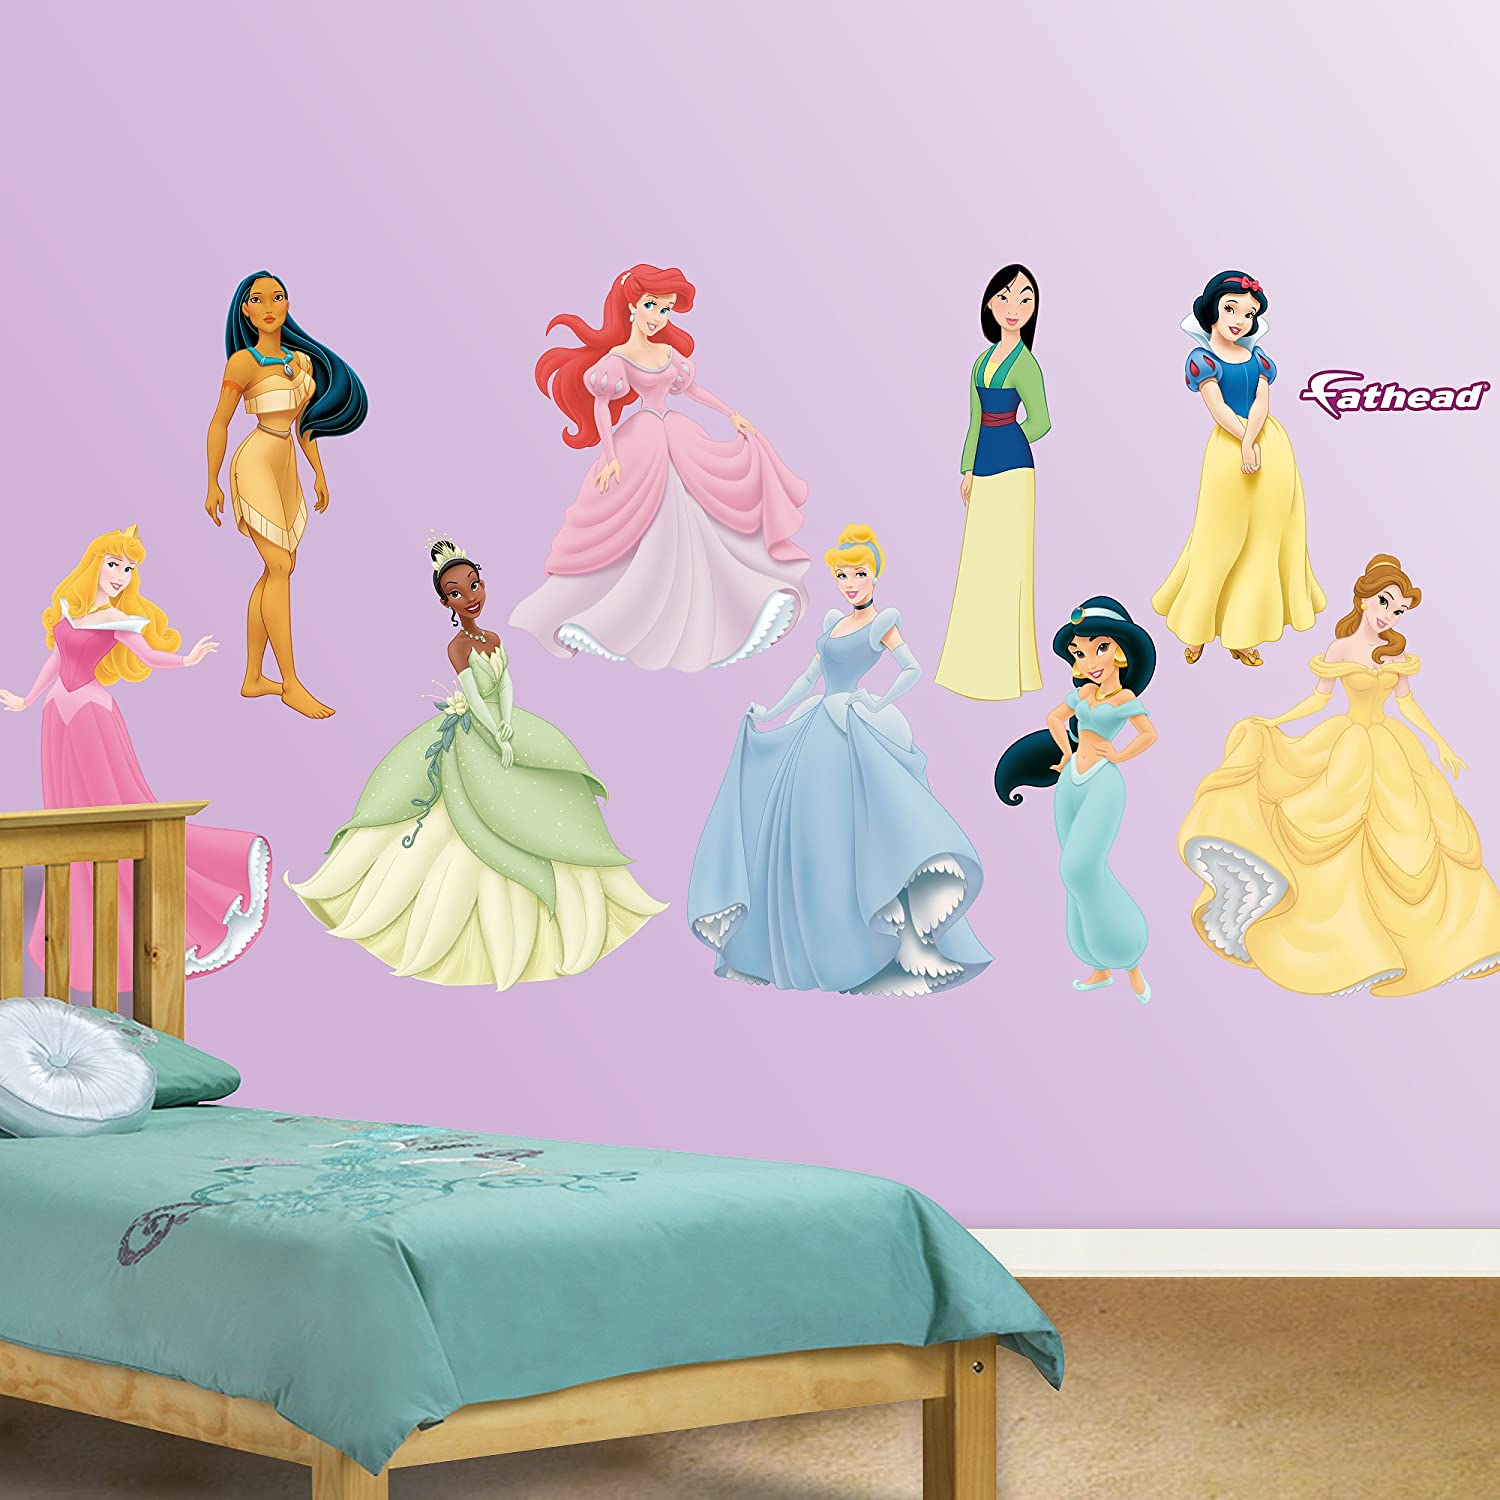 Amazon.com: FATHEAD Disney Princess Collection Graphic Wall Décor: Home U0026  Kitchen